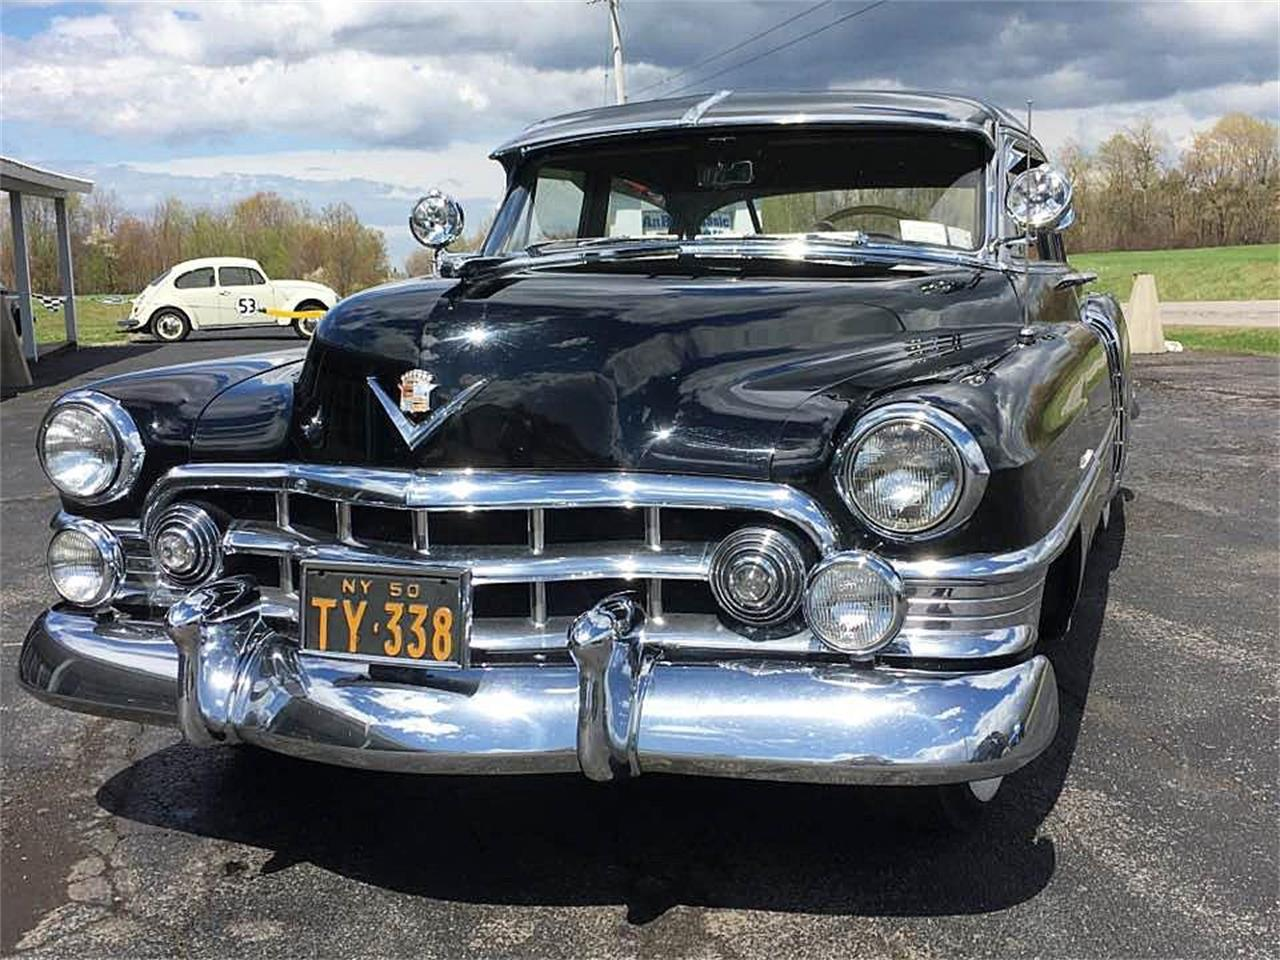 Large Picture of '50 Cadillac Series 62 located in Malone New York Auction Vehicle Offered by AB Classic Cars - L21S